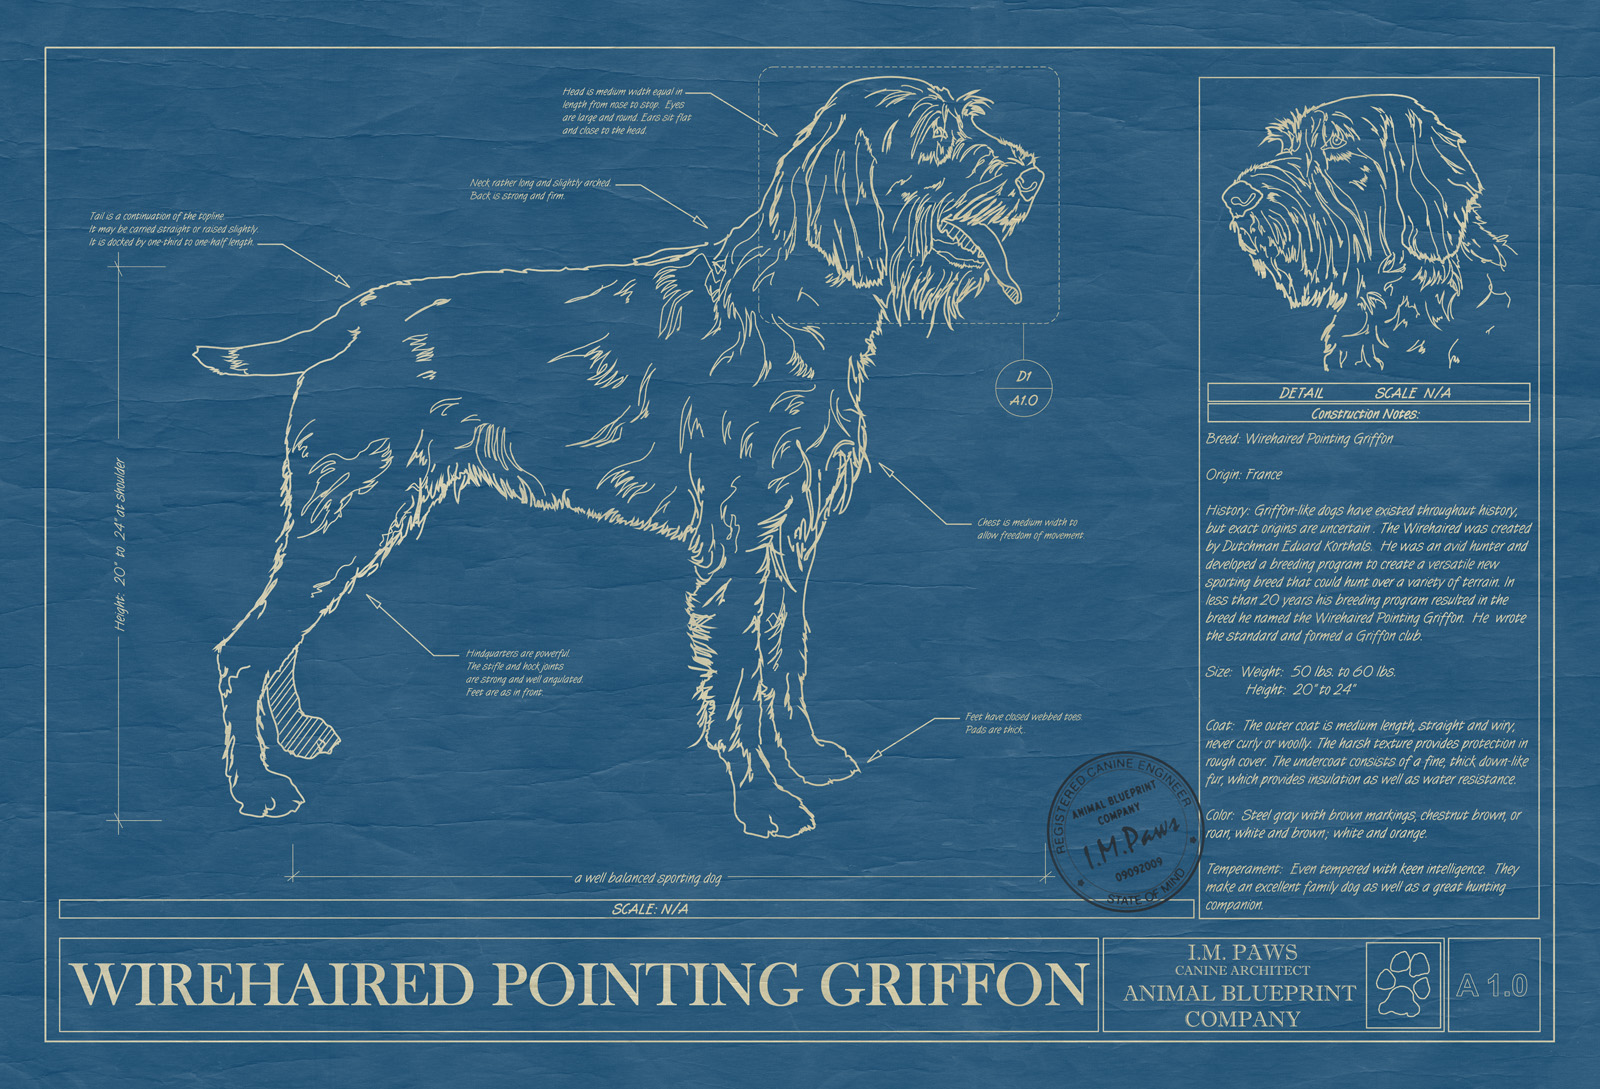 Wirehaired Pointing Griffon - Animal Blueprint Company